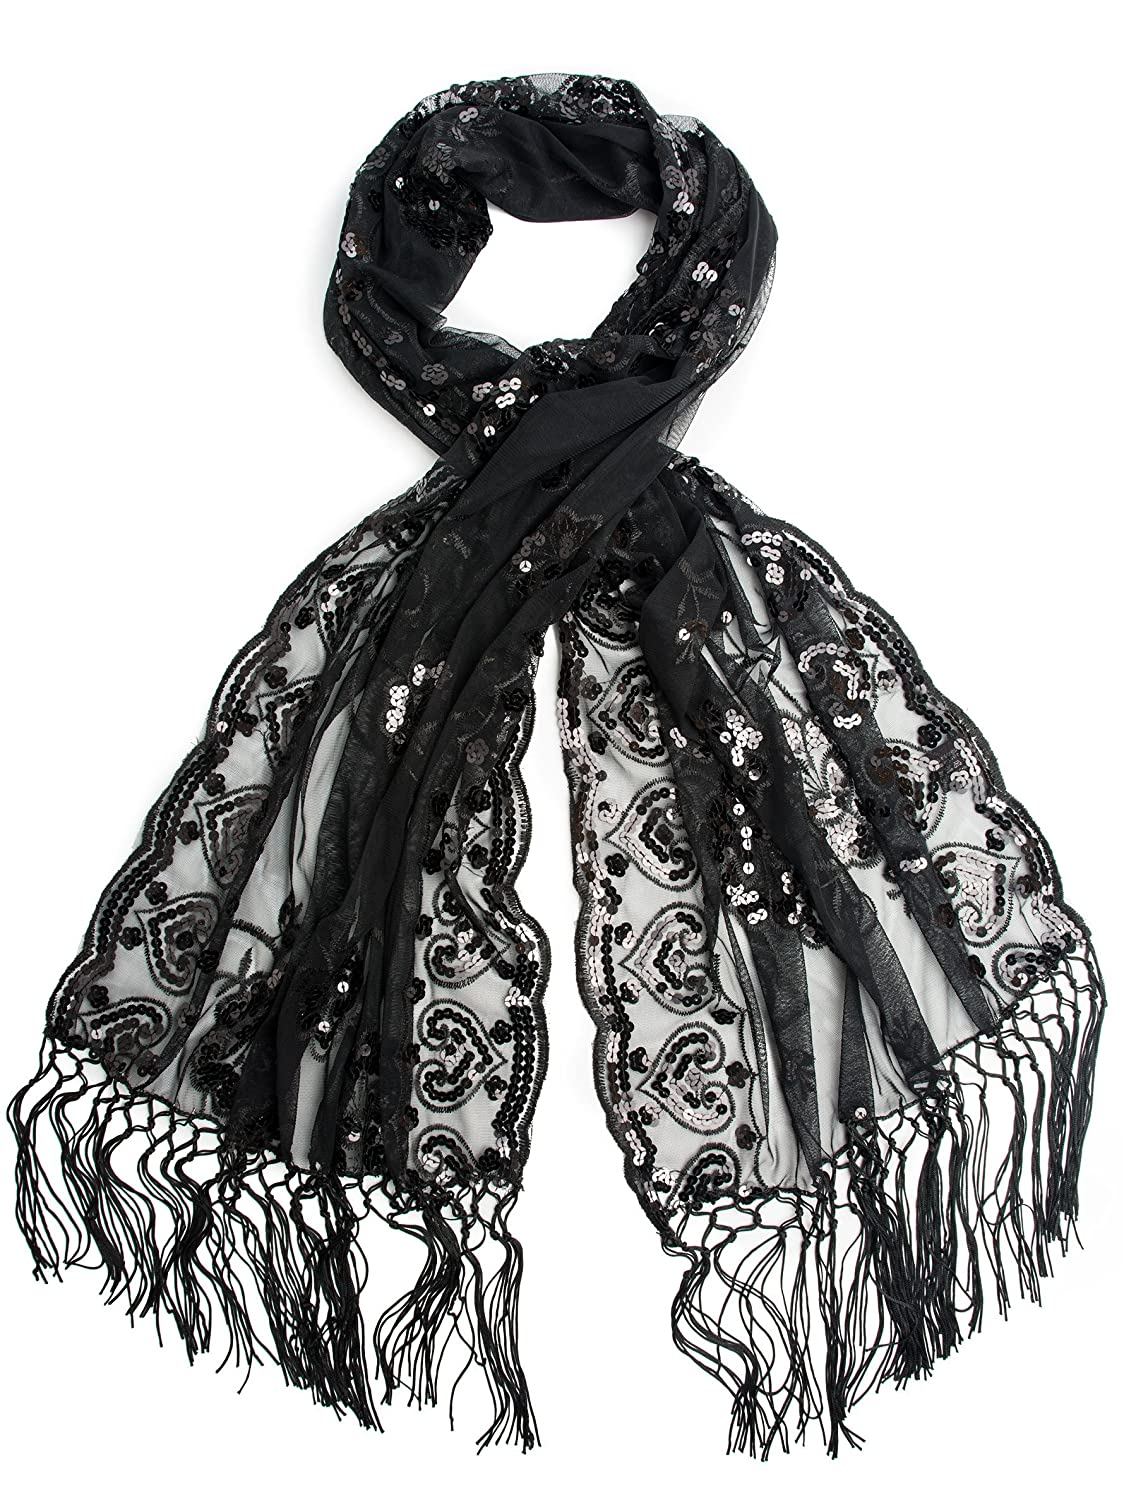 Vintage Scarf Styles -1920s to 1960s Black Madison Shawl Long Fringe Sequin Evening Wrap $14.95 AT vintagedancer.com